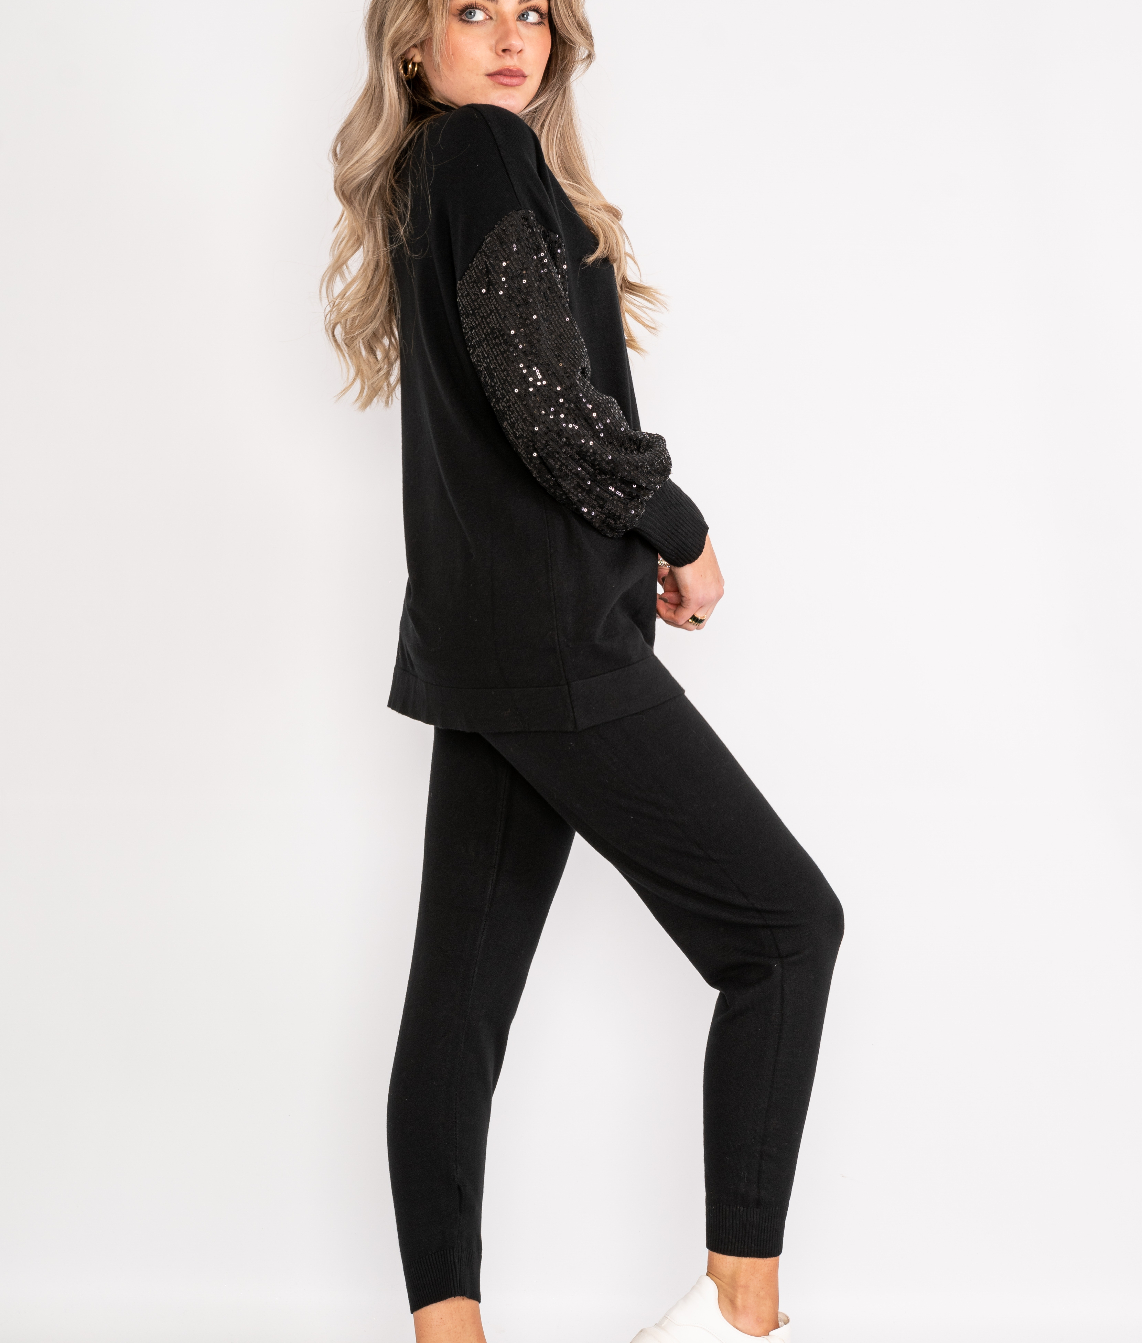 Sequin sleeve loungewear set Lucy Sparks